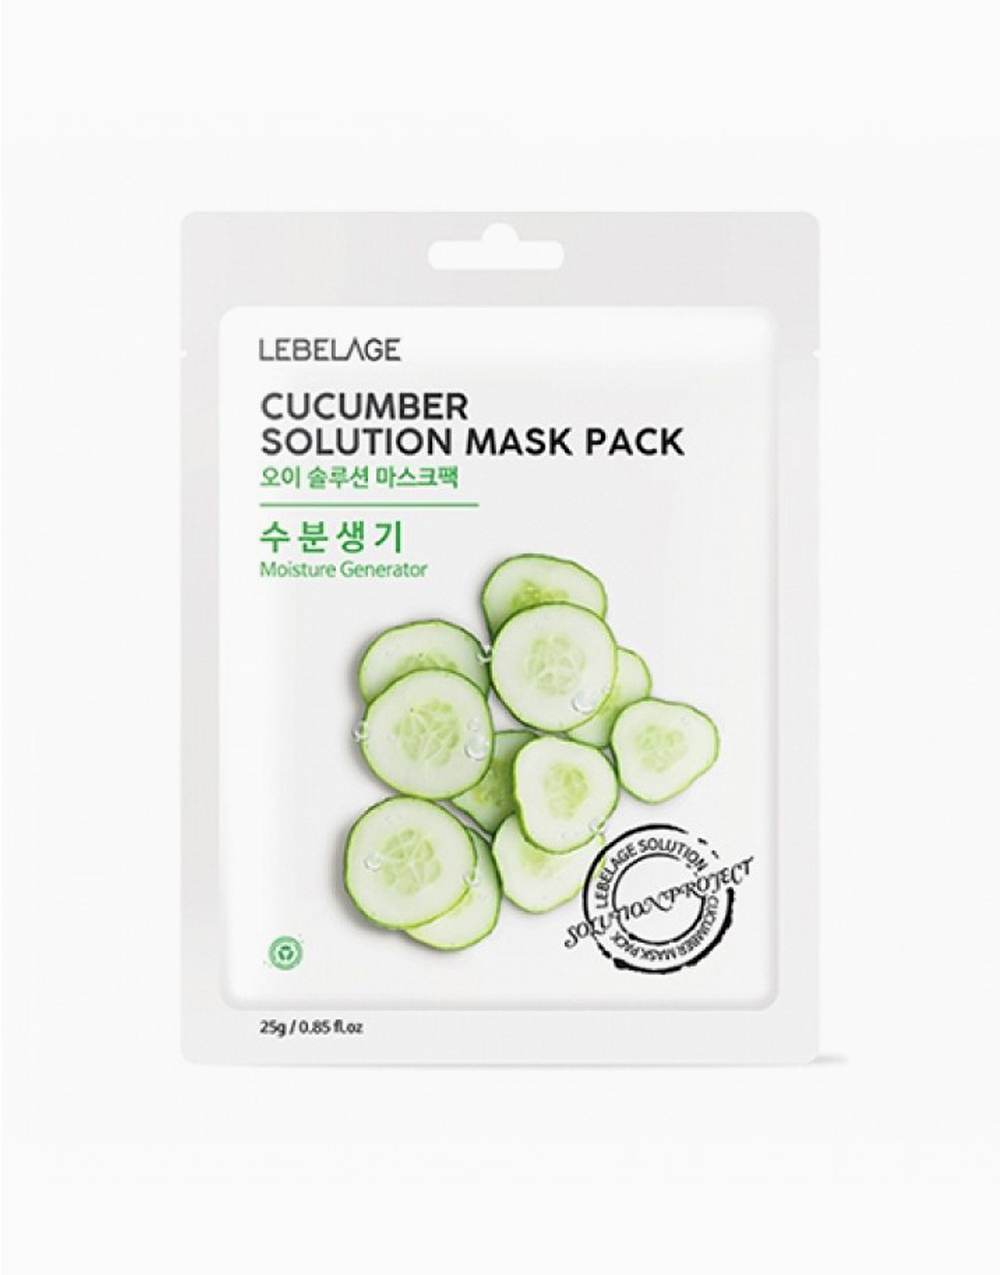 Cucumber Solution Mask Pack (1 Sheet) by Lebelage